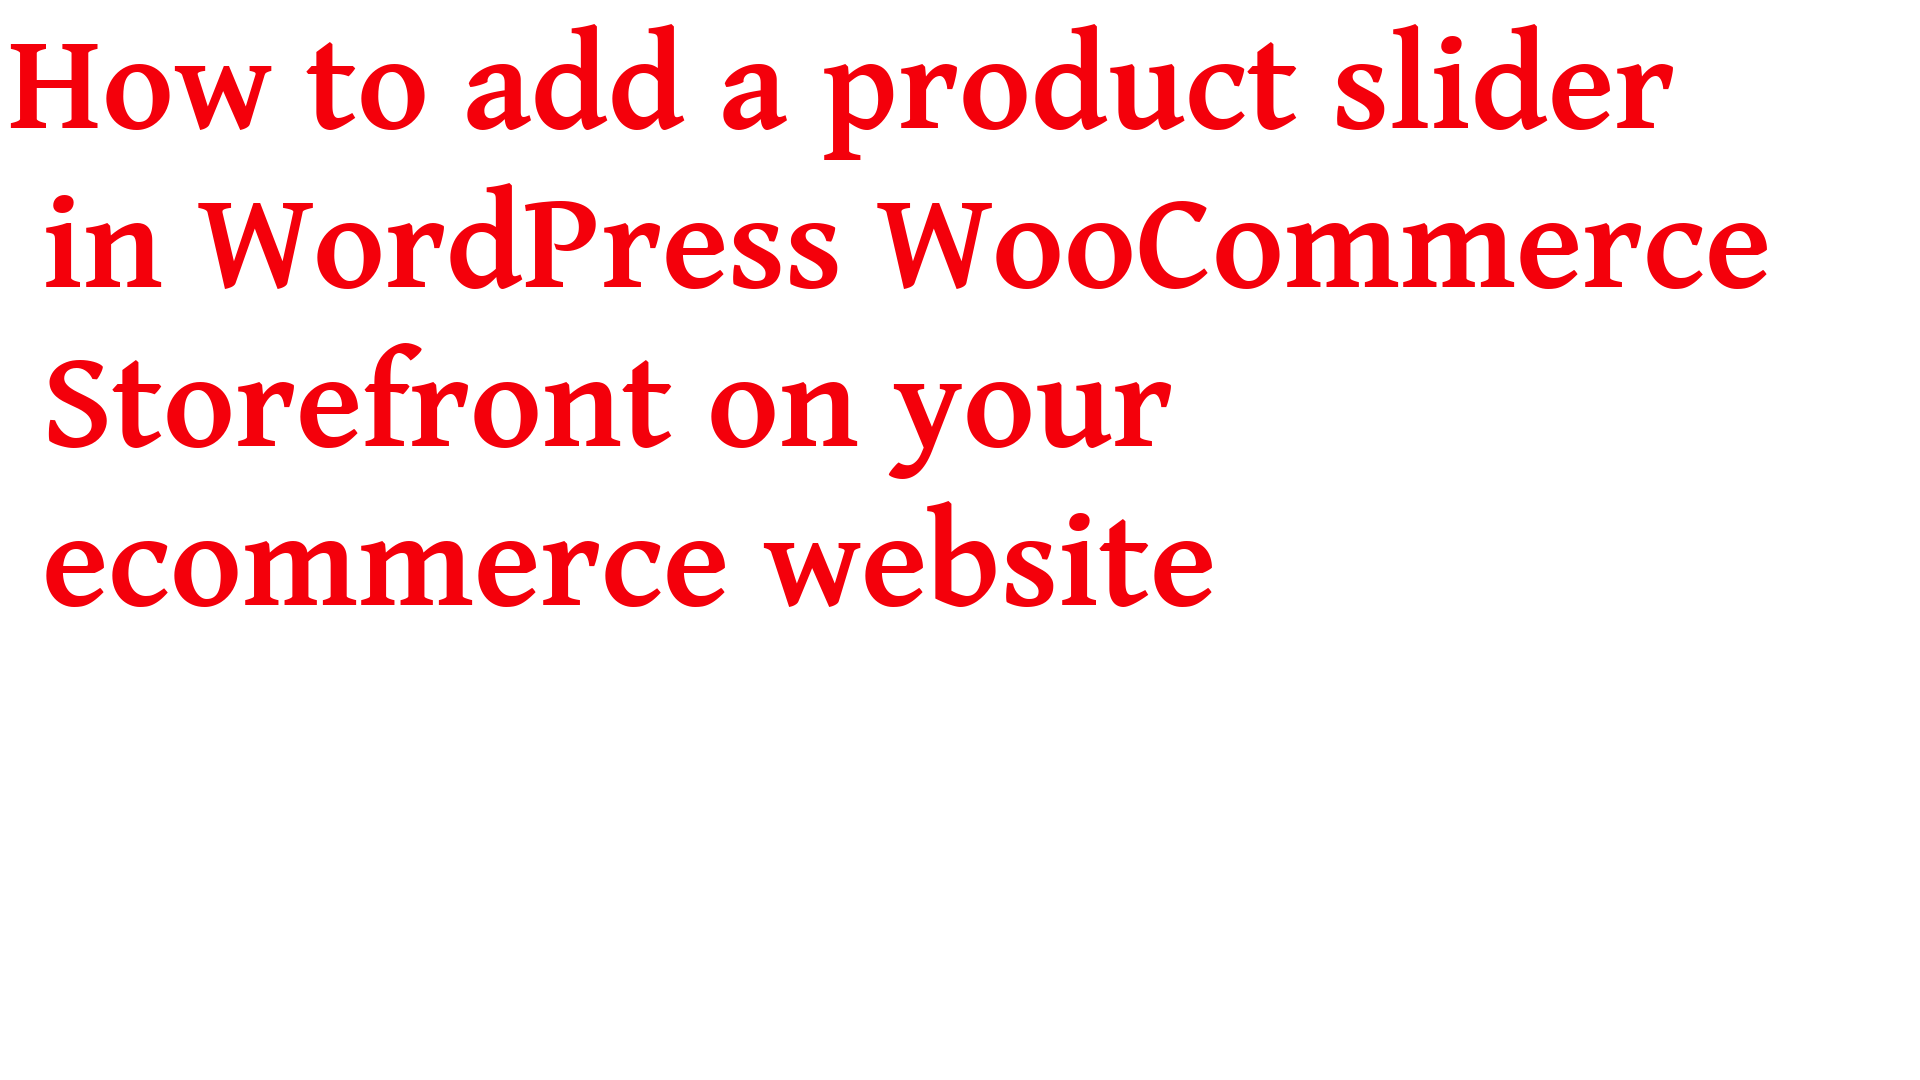 How to add a product slider in WordPress WooCommerce Storefront on your ecommerce website 2020